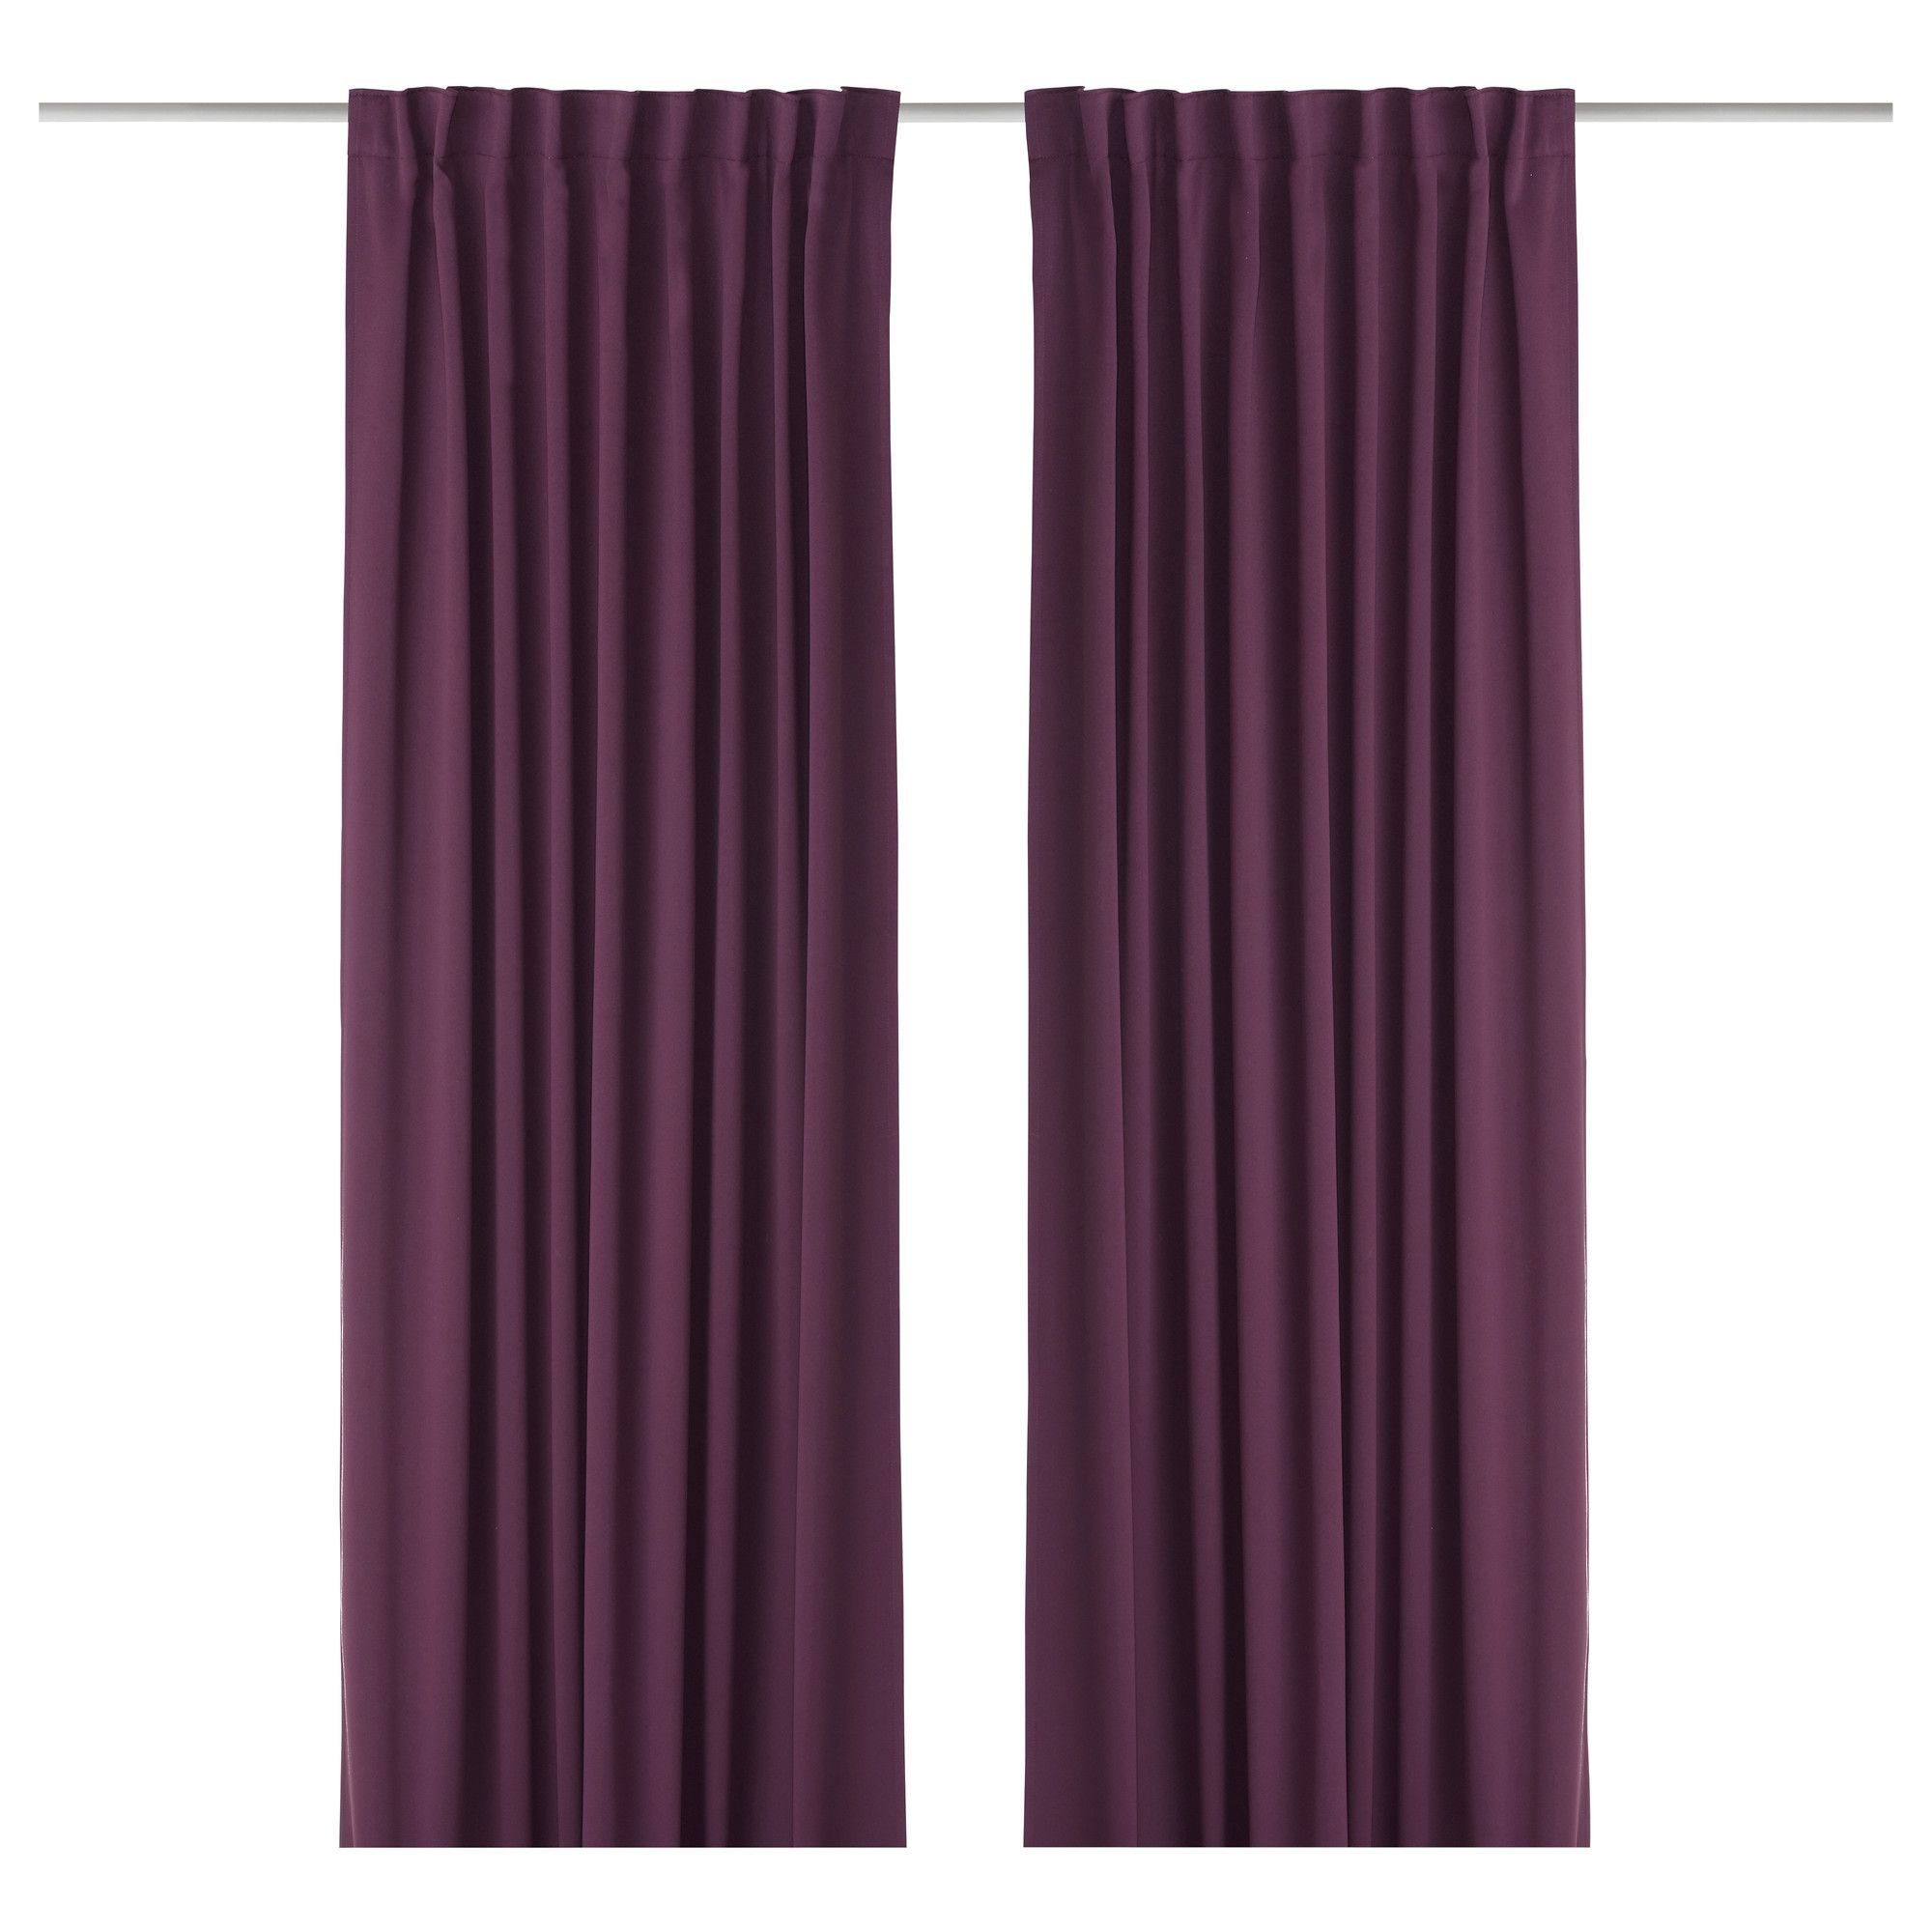 purple pin effective have werna blackout winter drafts in summer heat function curtains a and the out both at valance ikea valances lilac dark keeping